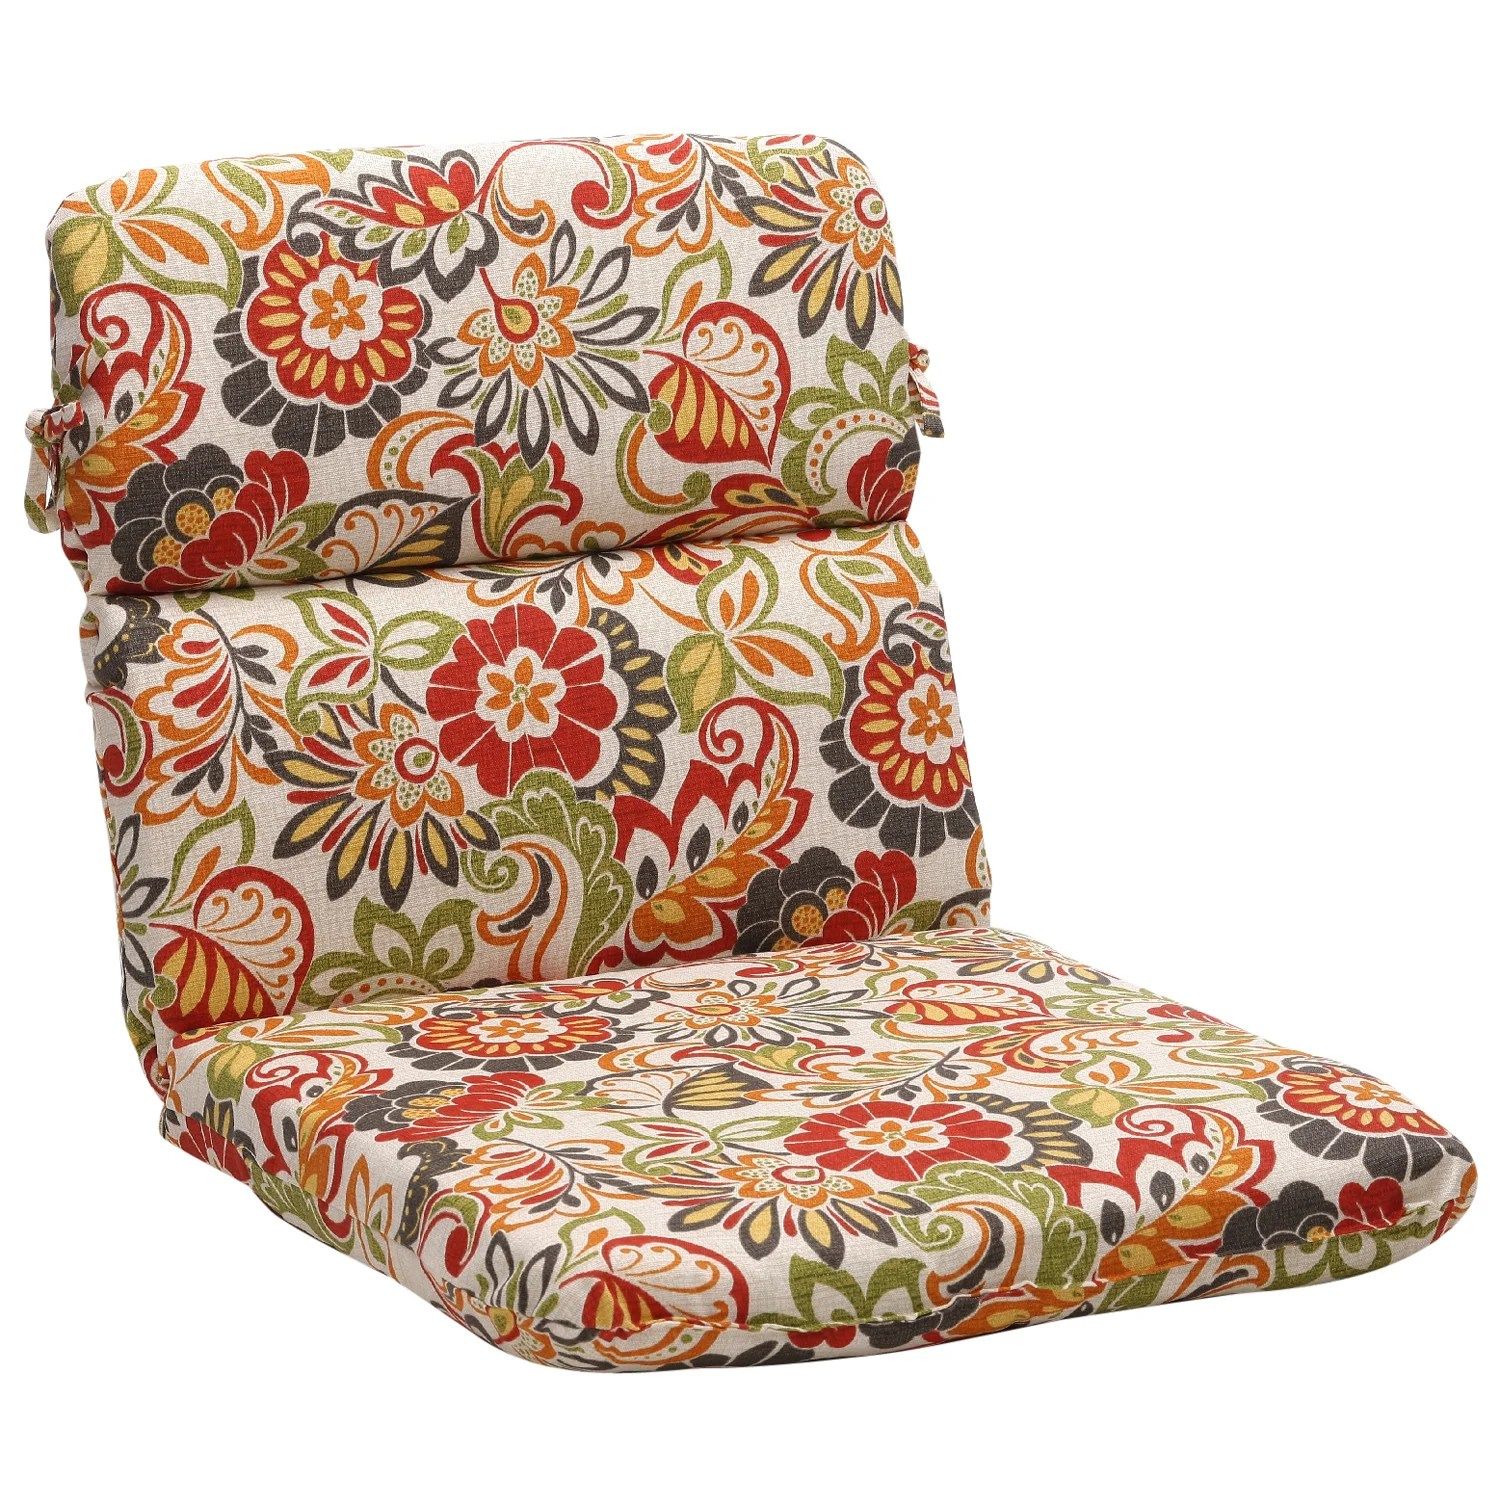 Floral Chair Shop Rounded Multicolored Floral Outdoor Chair Cushion